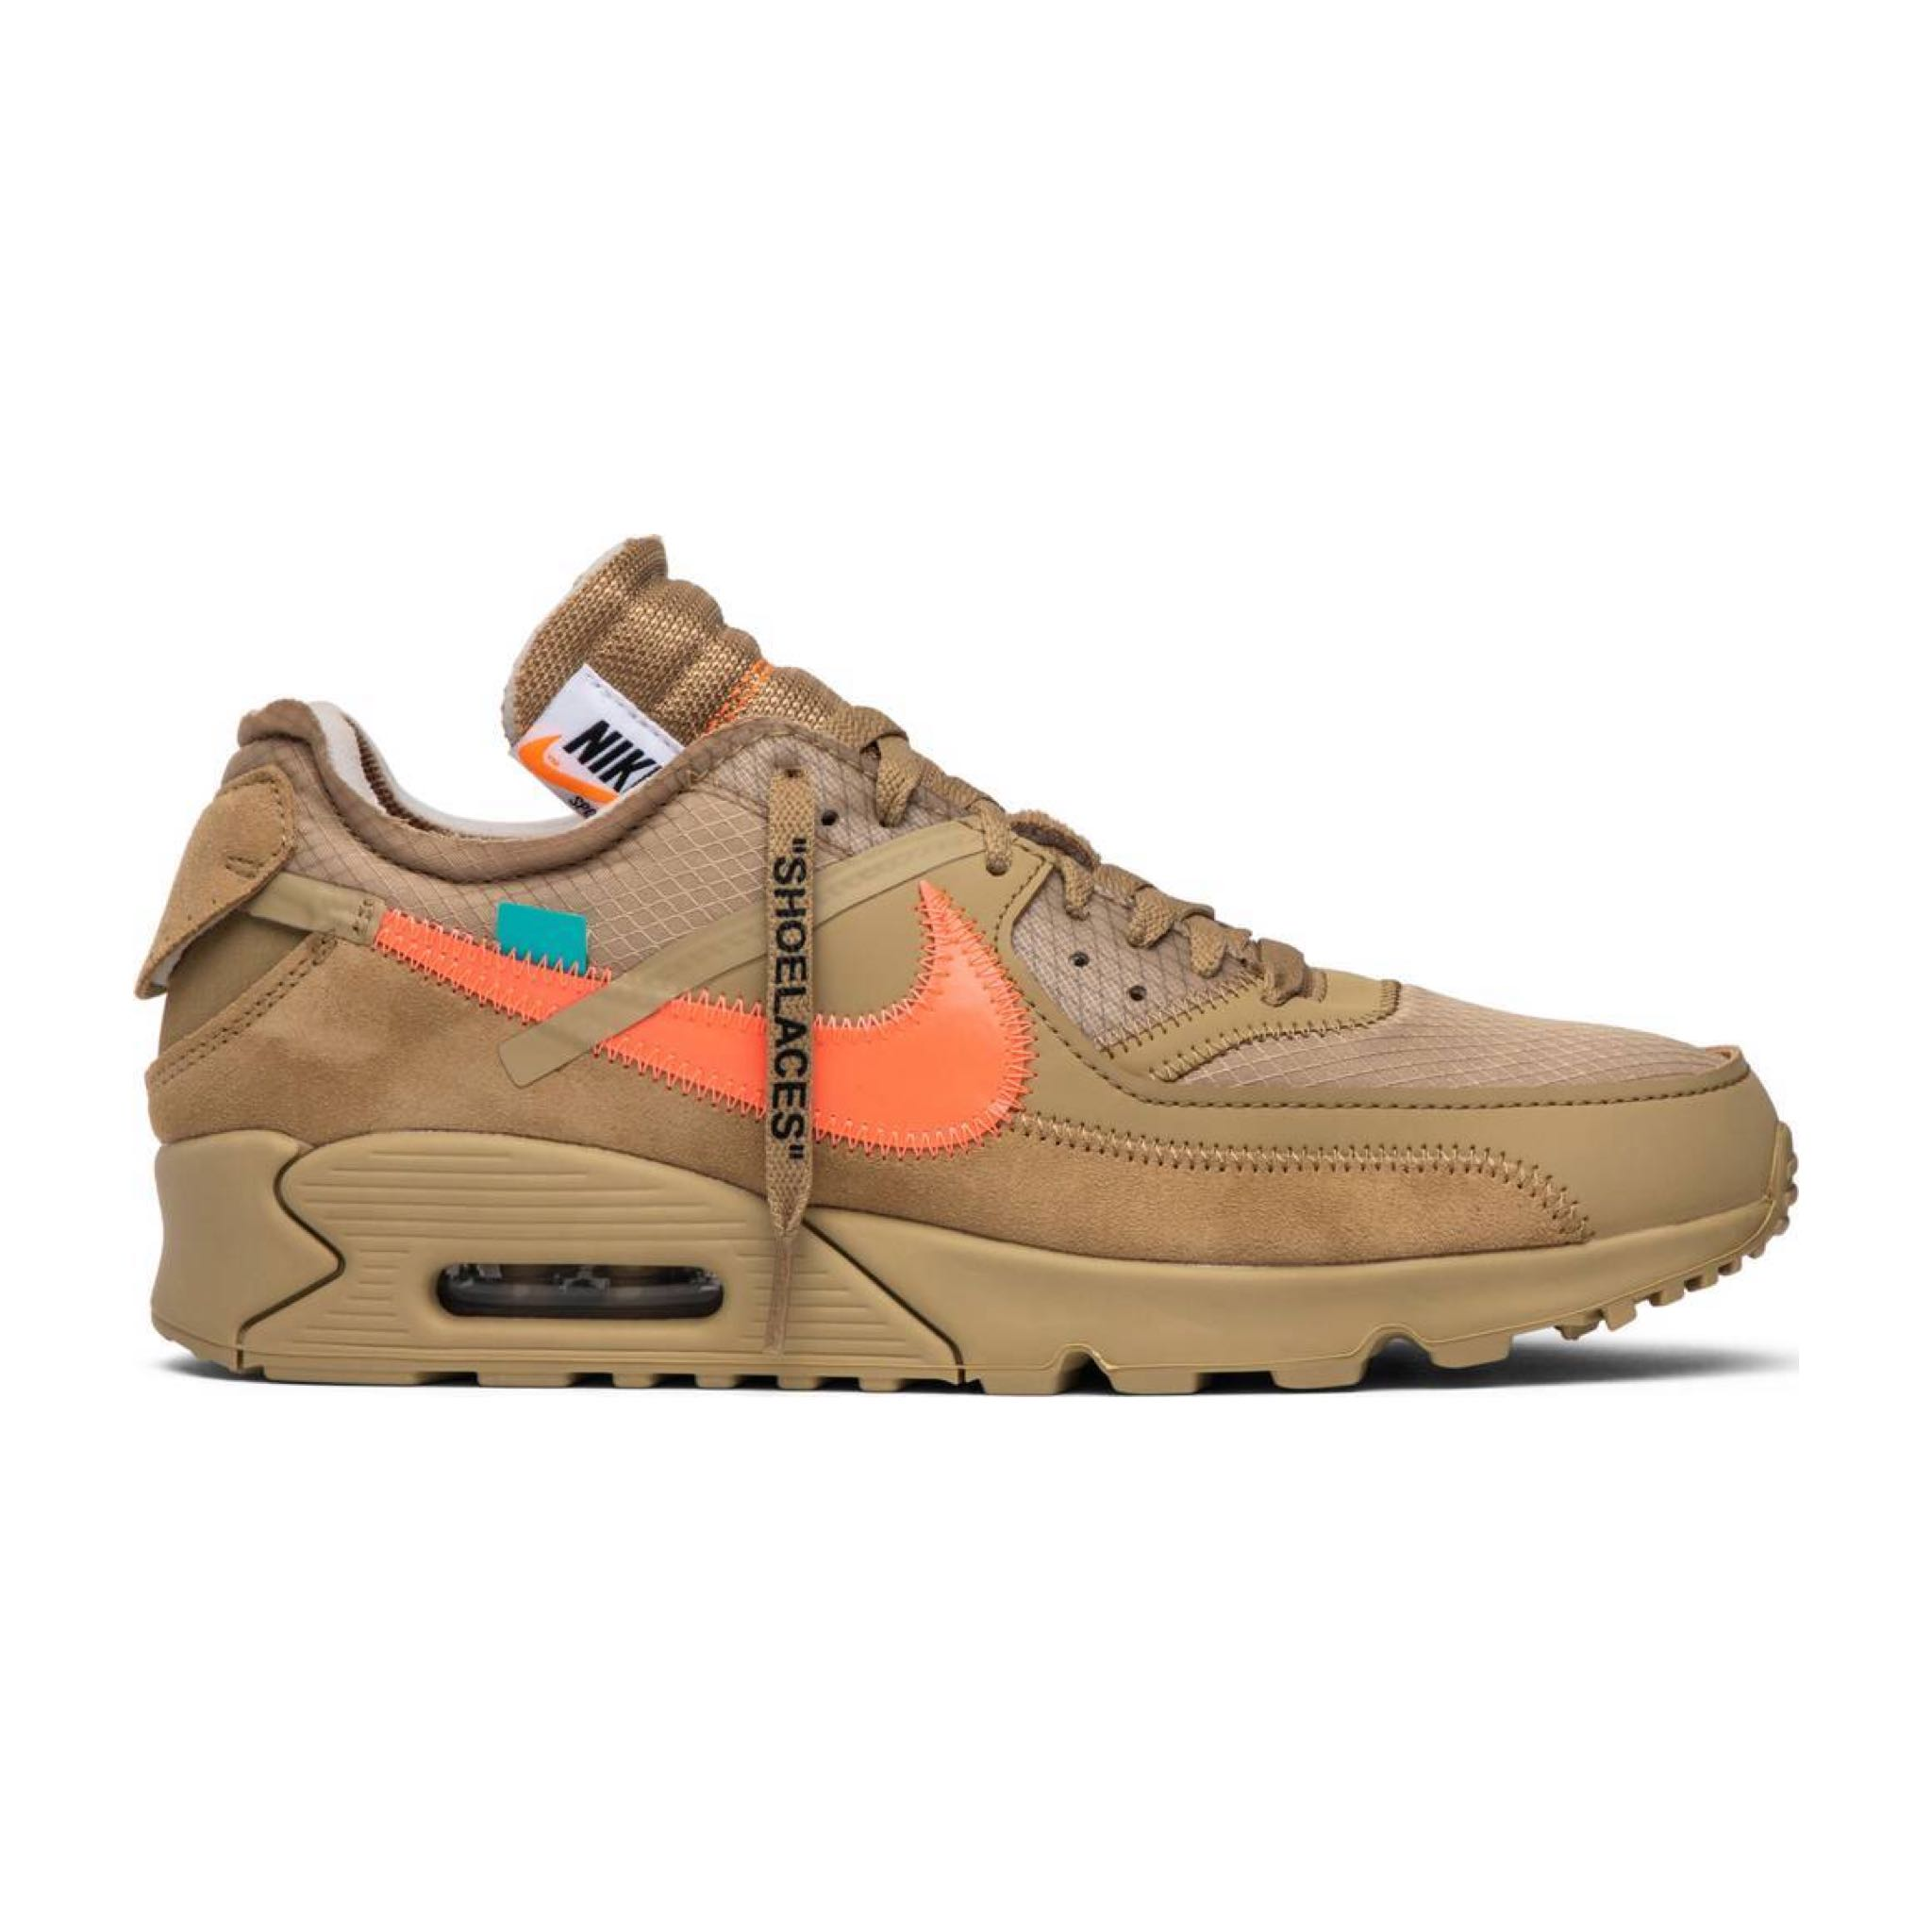 b63ebbcd72 Nike Off White Air Max 90 Beige, Men's Fashion, Footwear, Sneakers ...